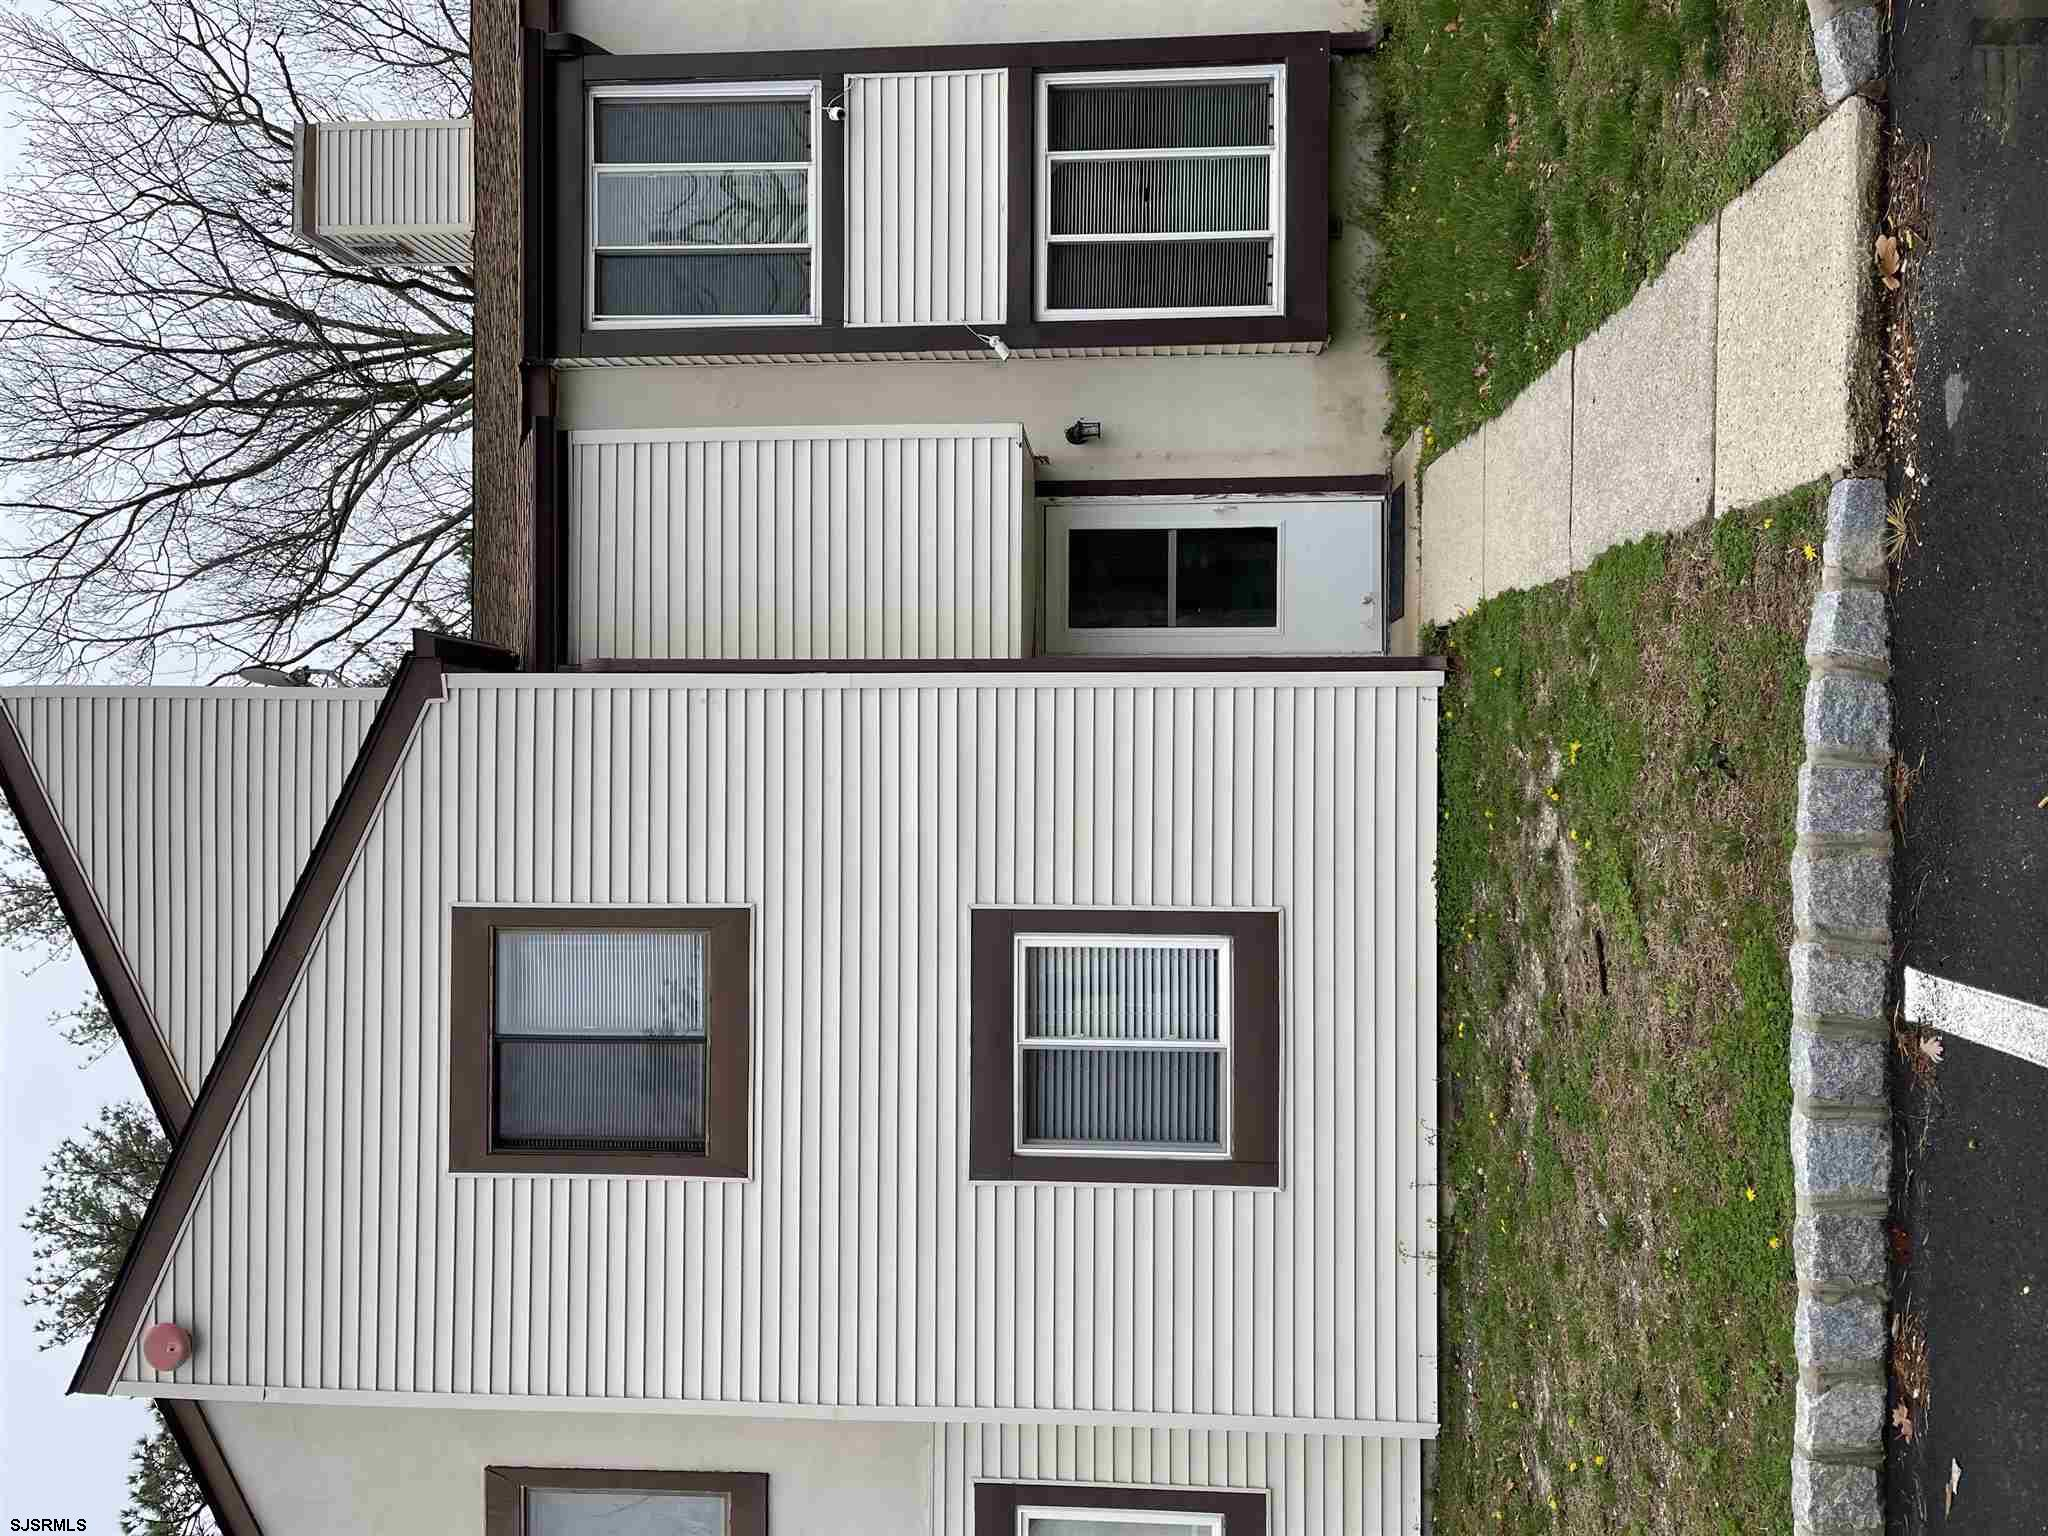 Welcome to 2421 Arbor ct. This unit has a fenced in patio, stainless steel appliances, washer, dryer